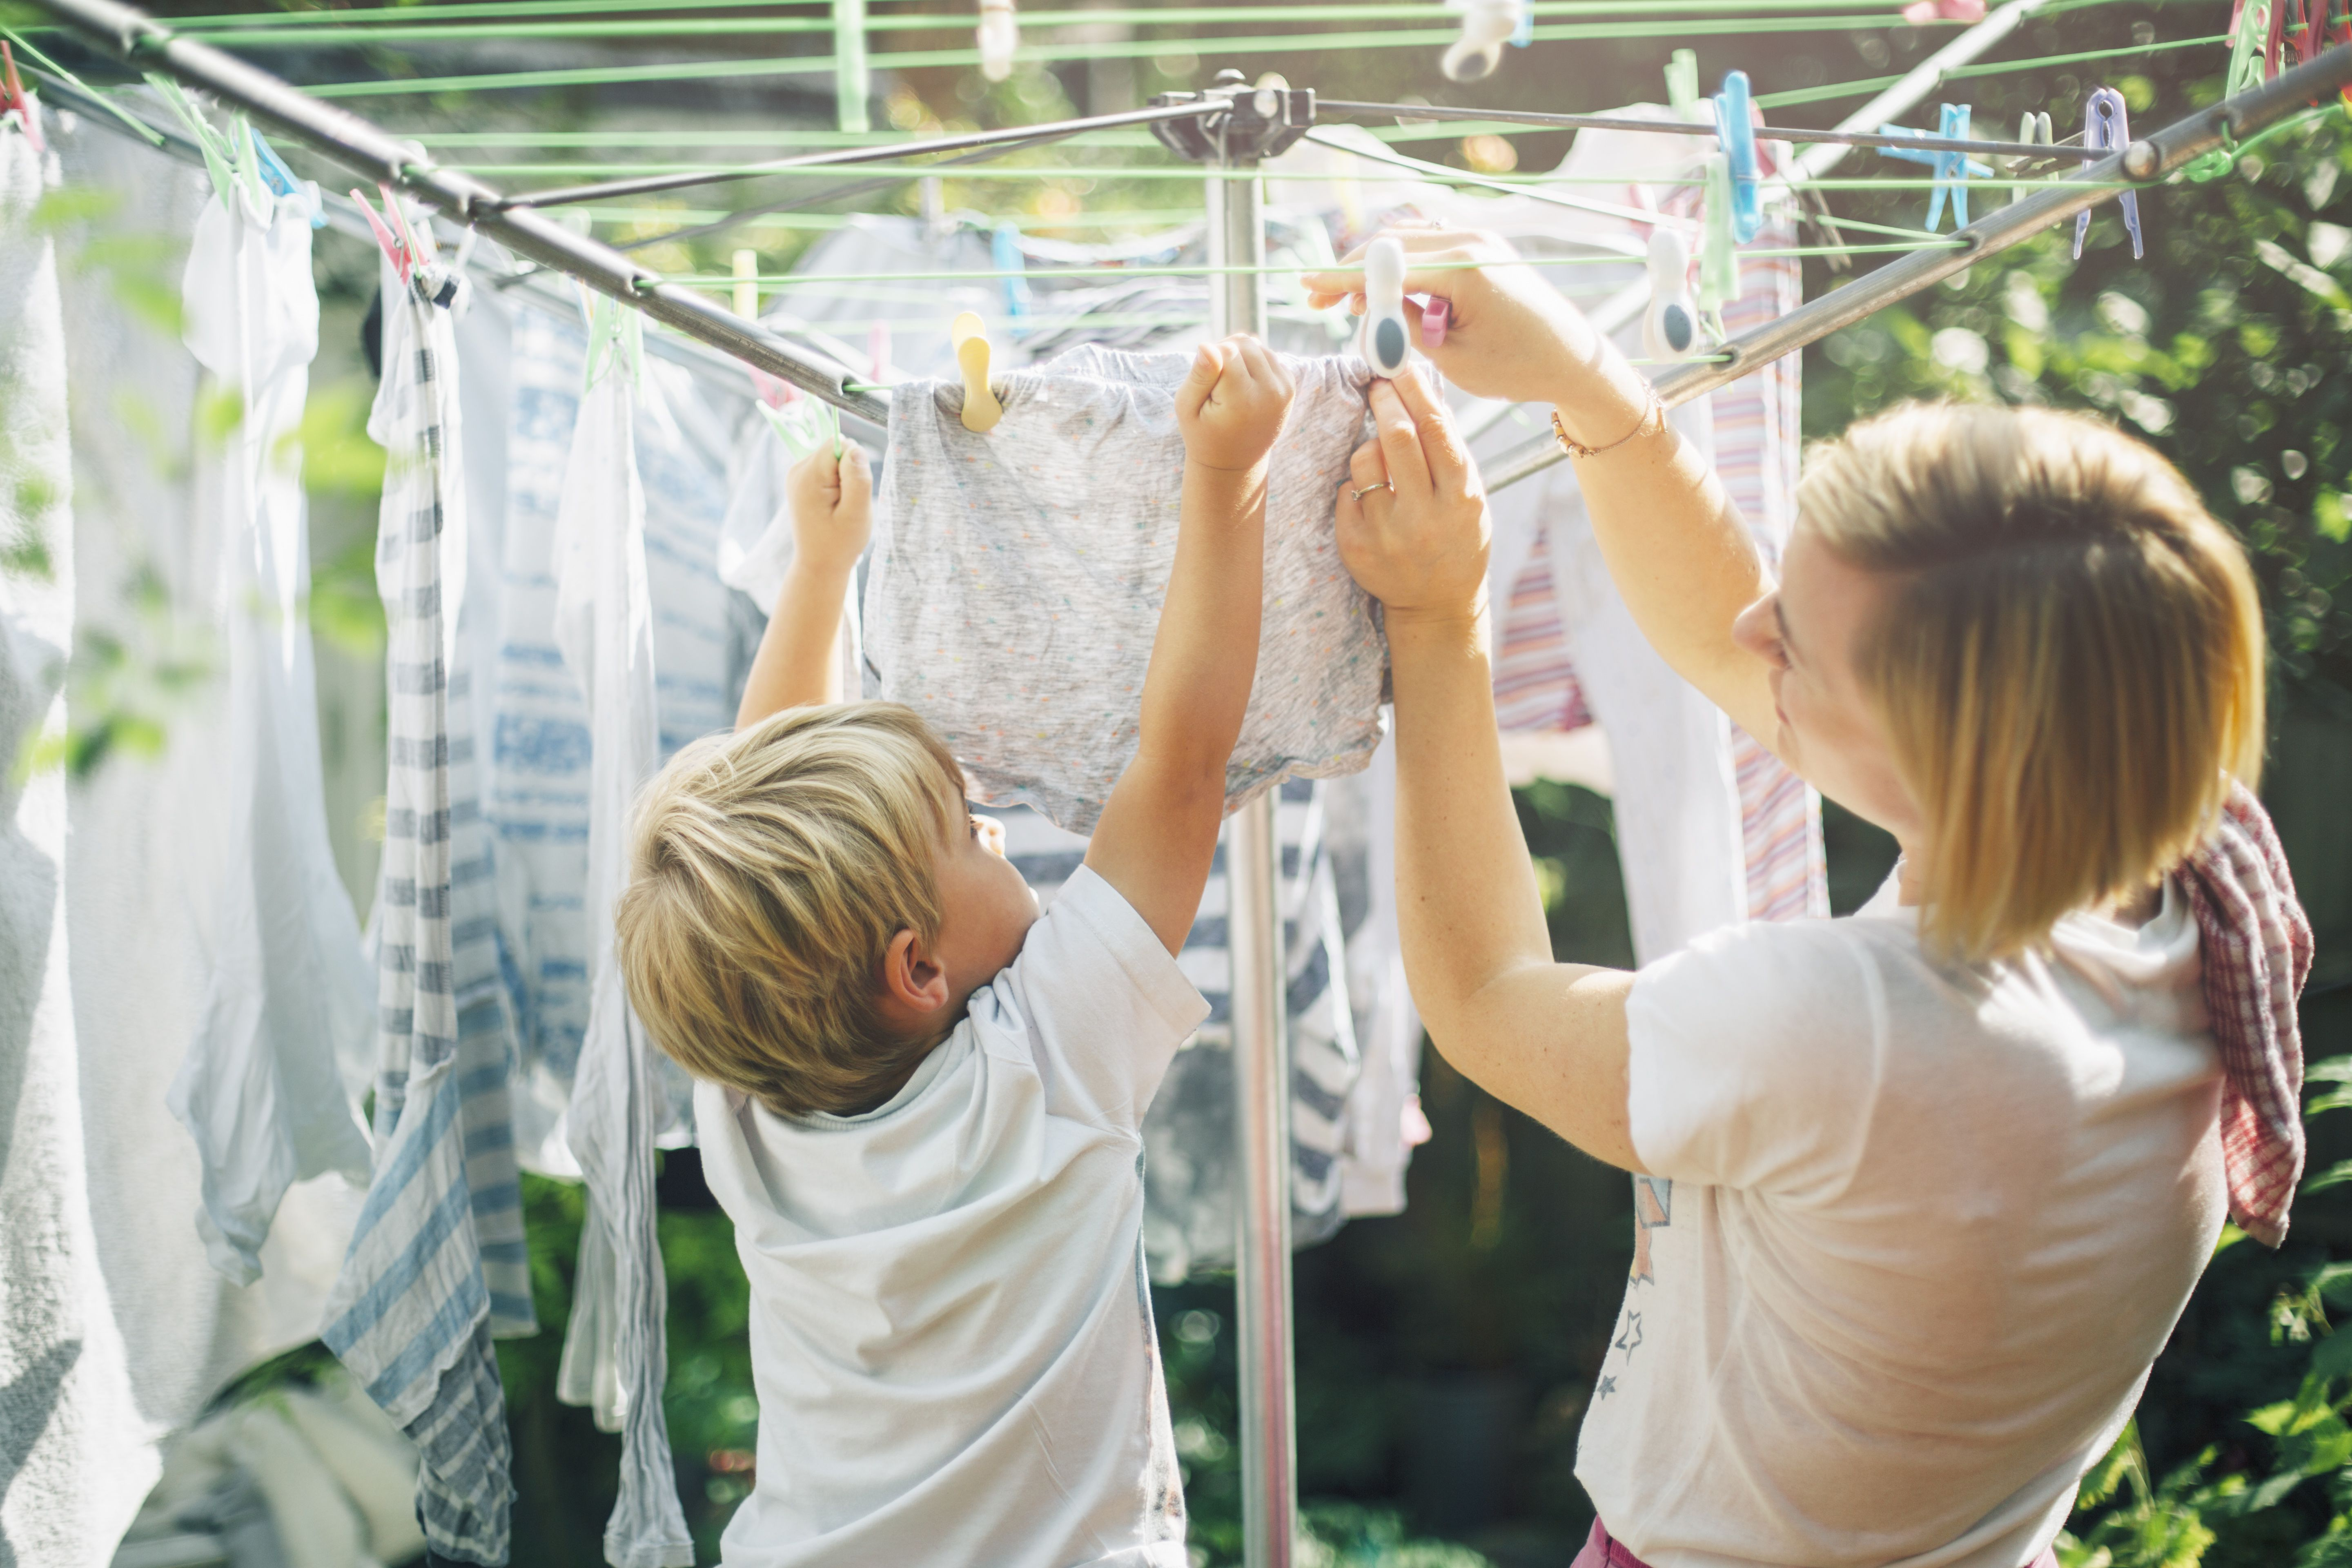 6 reasons to not line dry your clothes outside